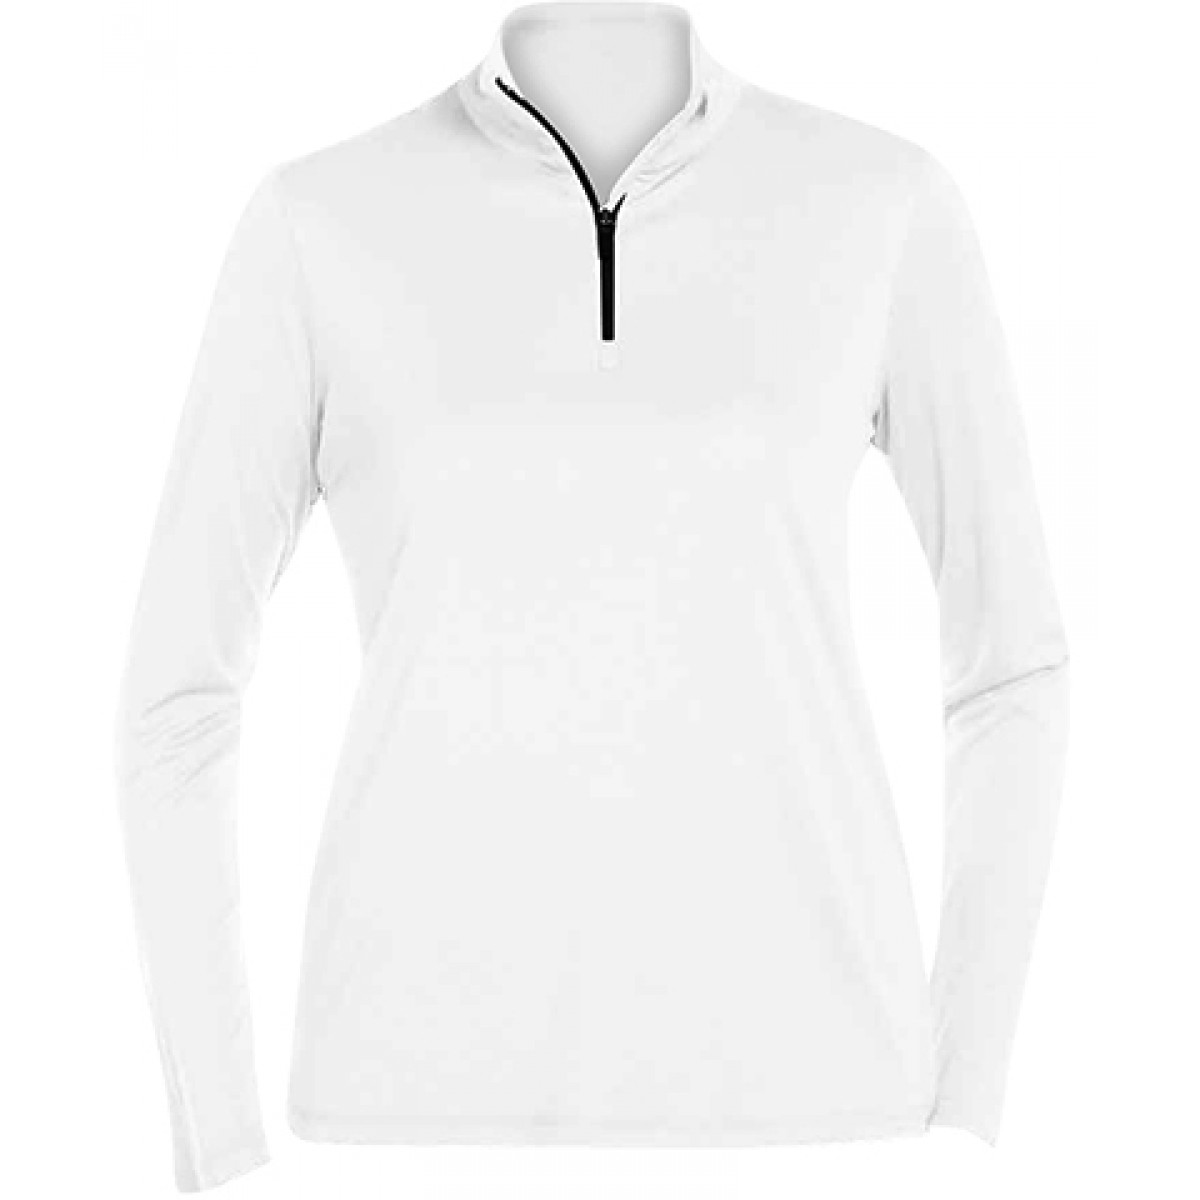 Ladies Quarter-Zip Lightweight Pull Over -White-L